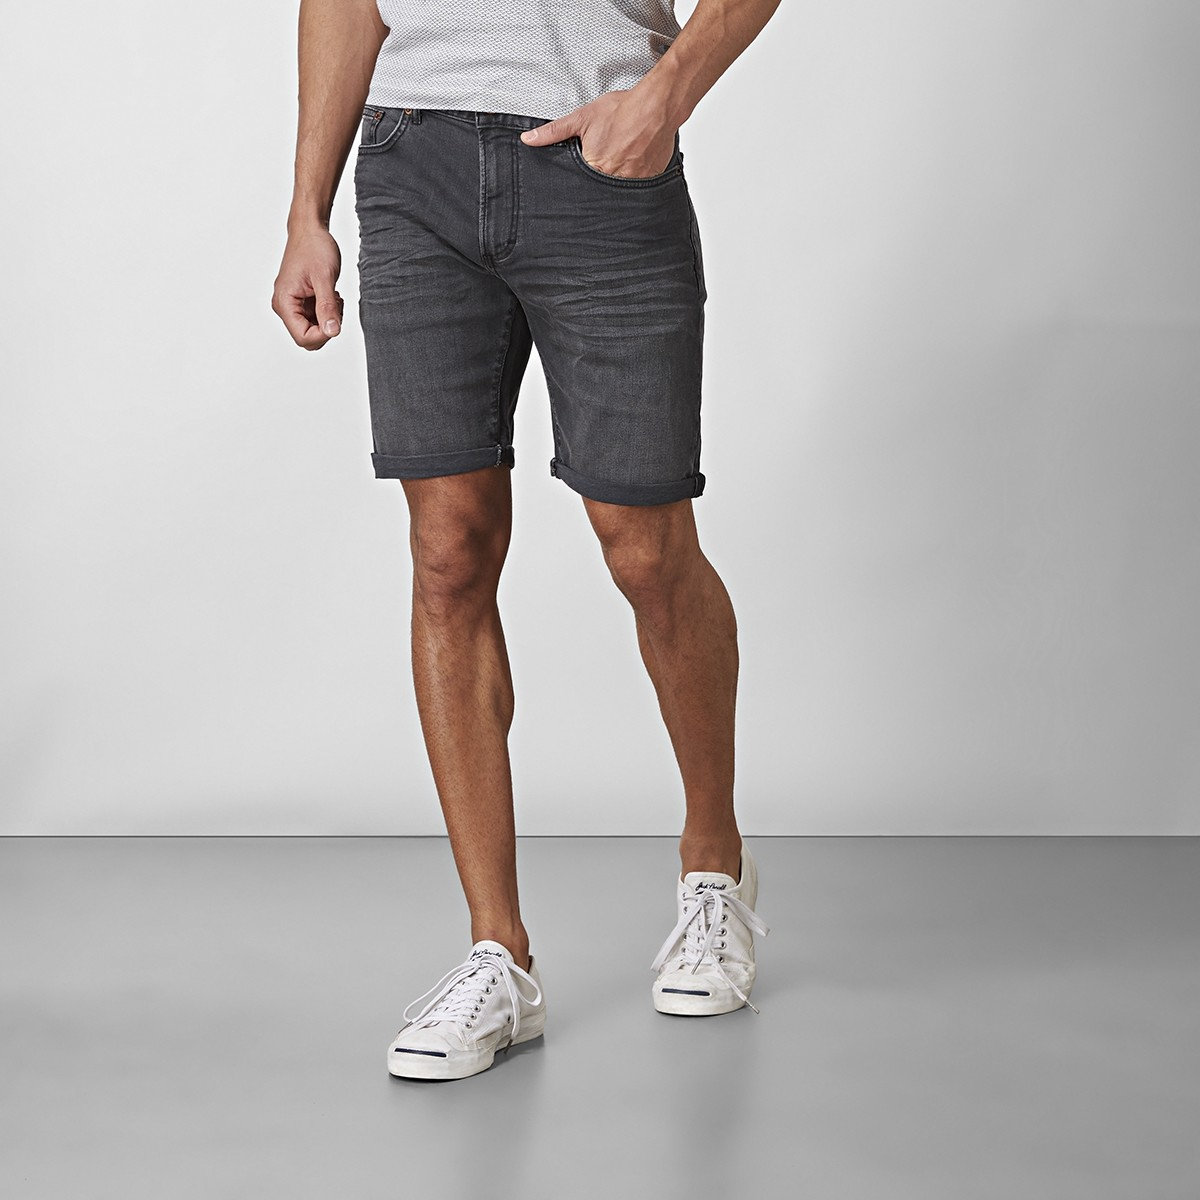 Bowery Jeansshorts Grå   East West   Brothers.se